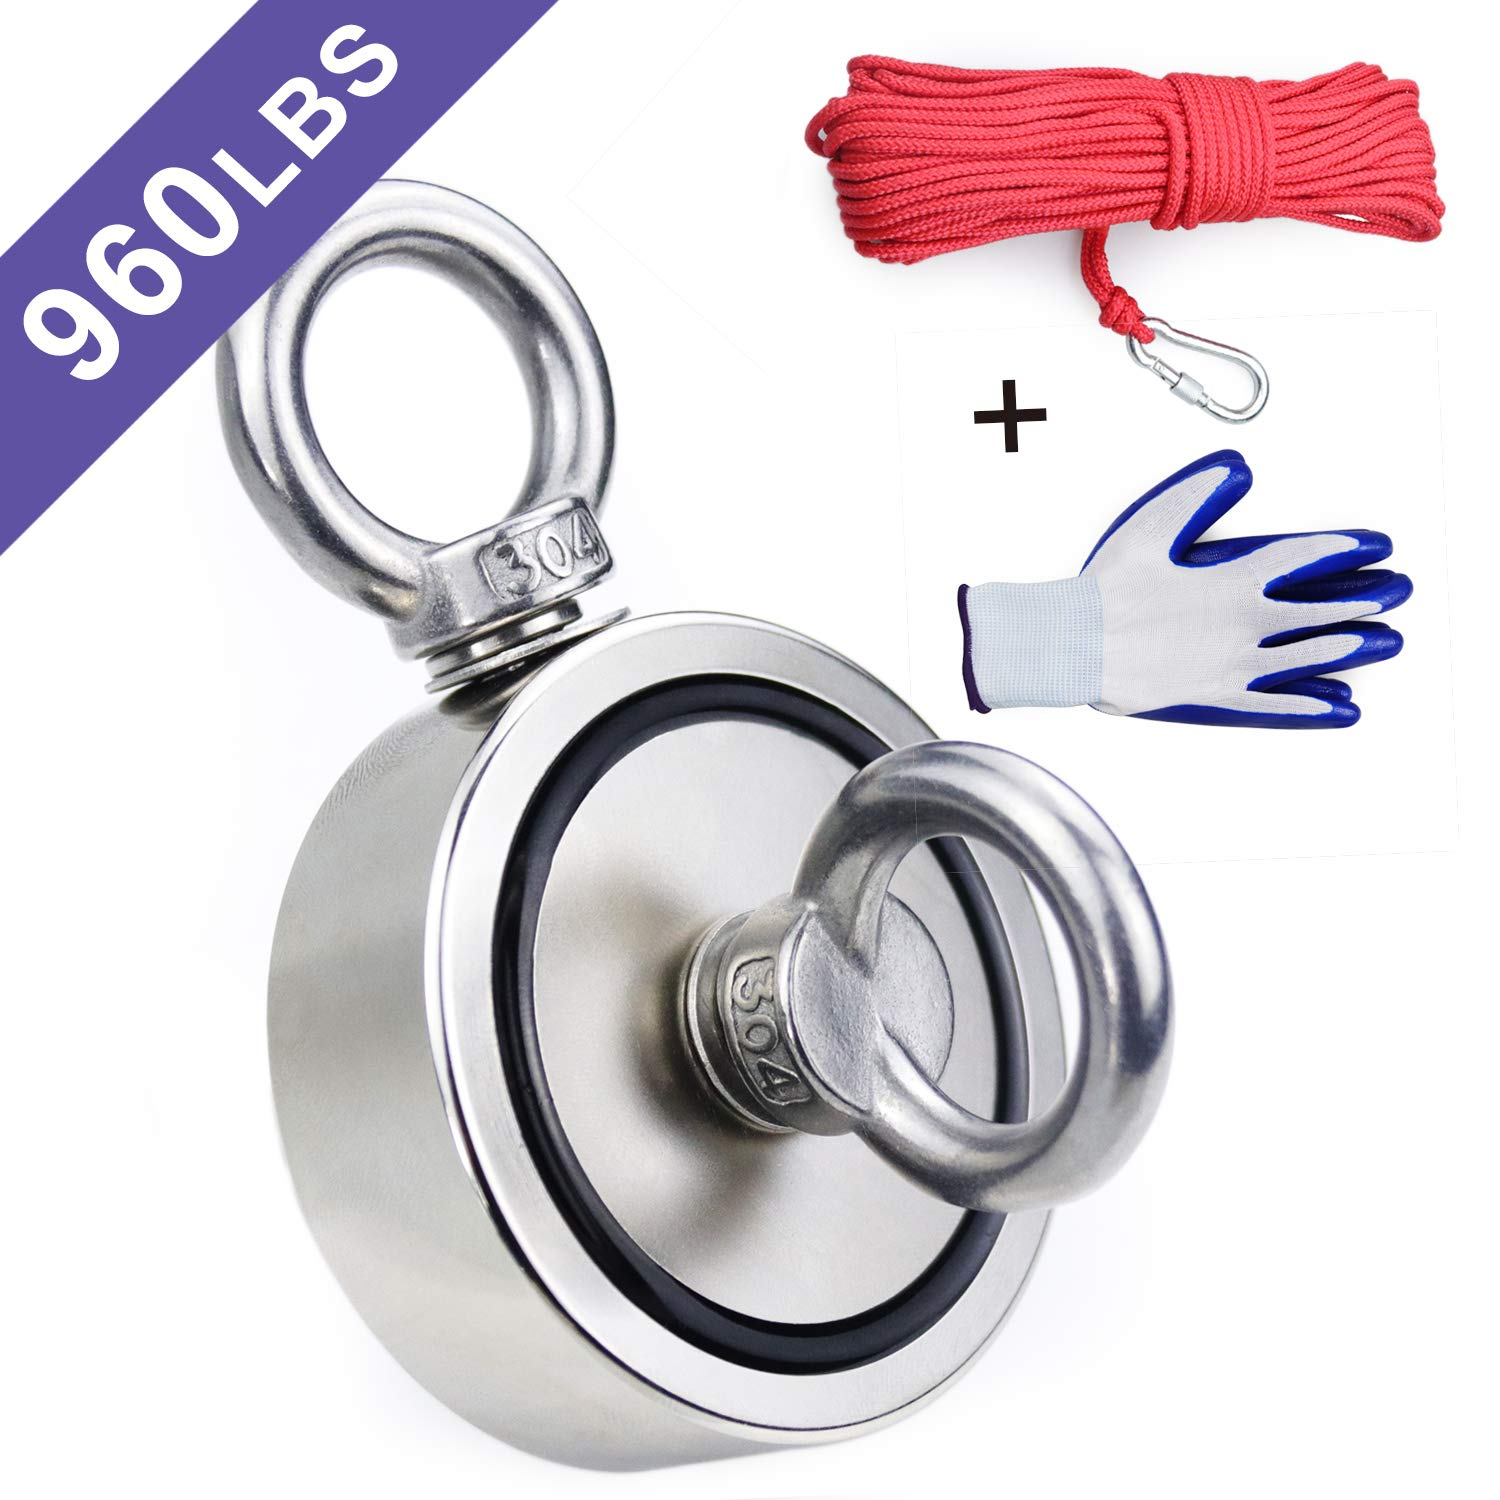 Double Sided Neodymium Fishing Magnet,Combined 960 lbs(436KG) Pulling Force Rare Earth Magnets with 20m (65 Foot) Durable Rope and Protective Gloves by BAVITE